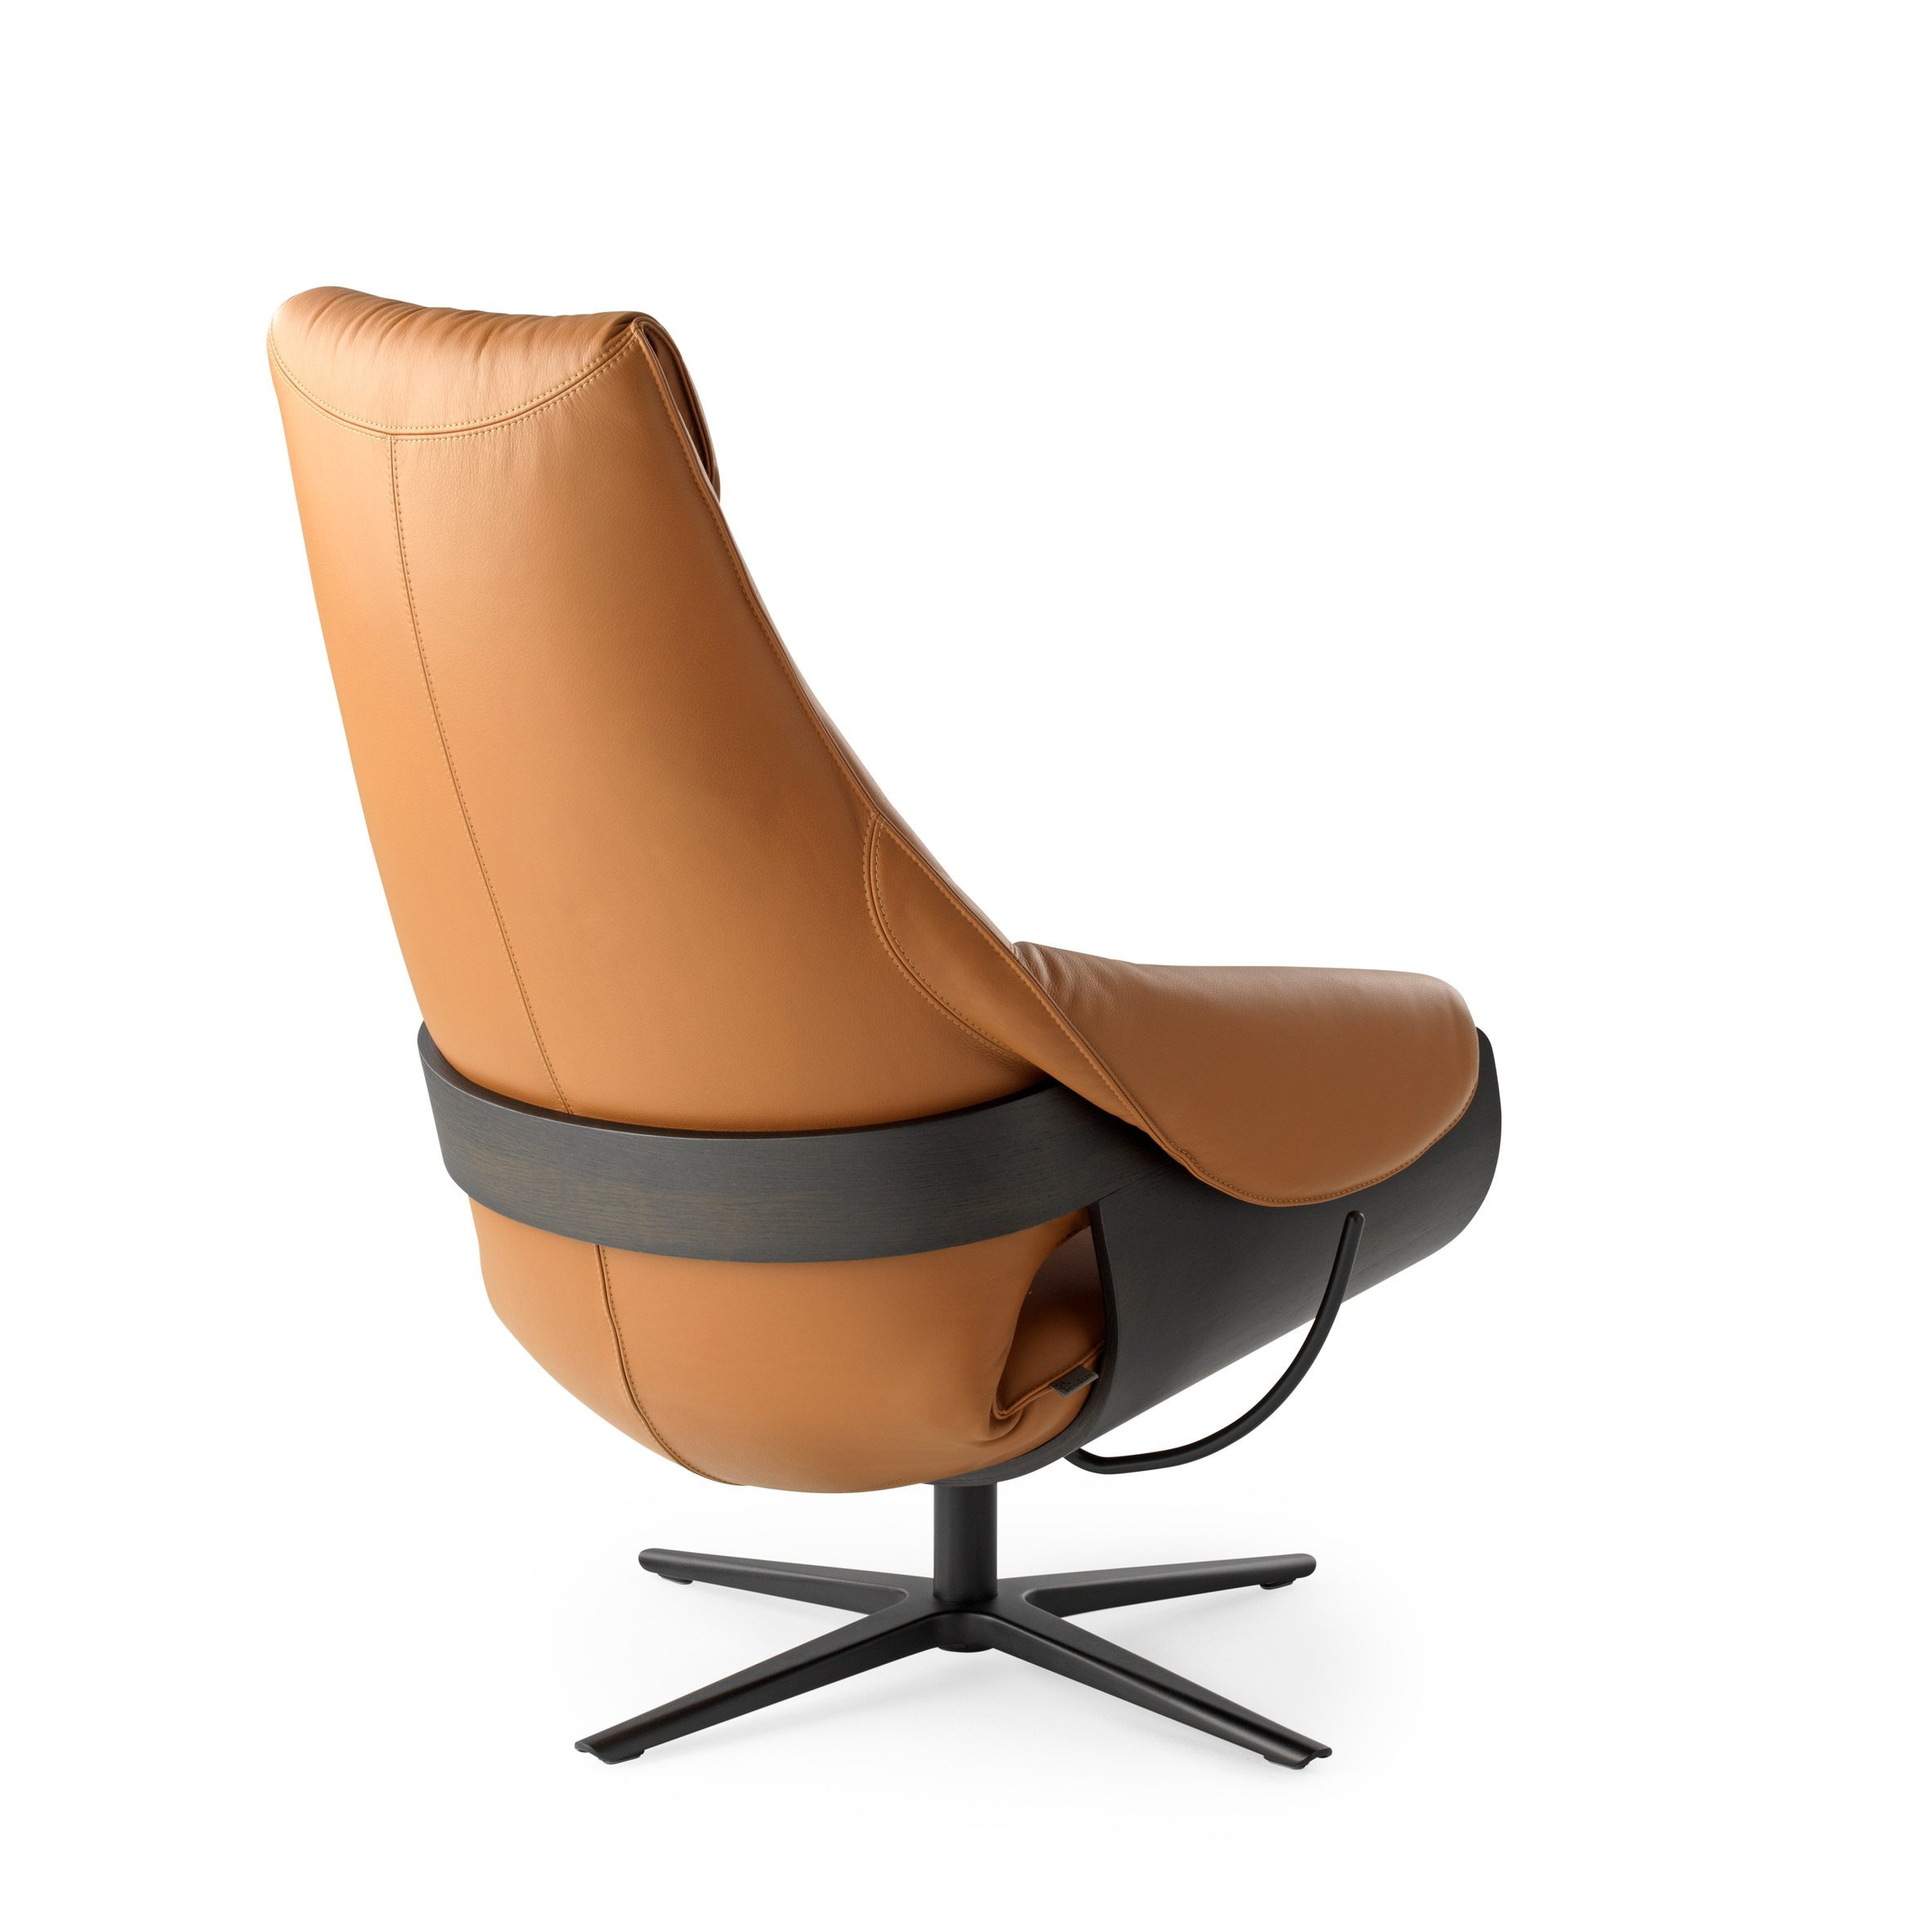 LXR10 armchair by Studio Truly Truly for Leolux LX tan leather and black stained shell rear view